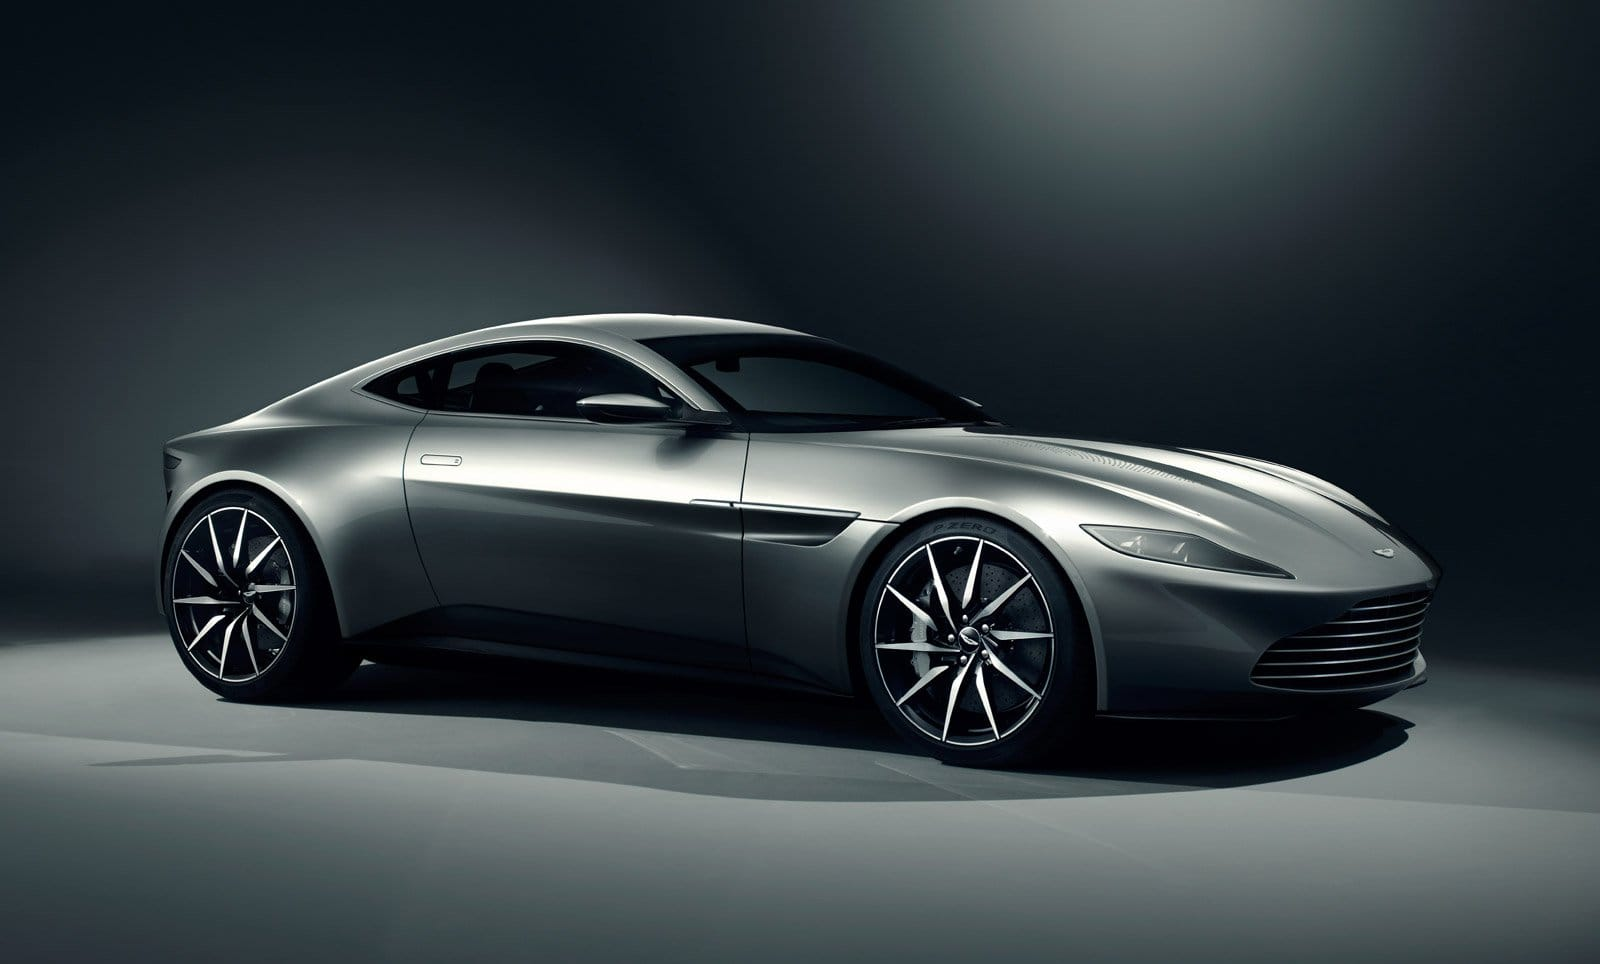 Aston-martin-db10-from-new-james-bond-movie-spectre 100493337 h